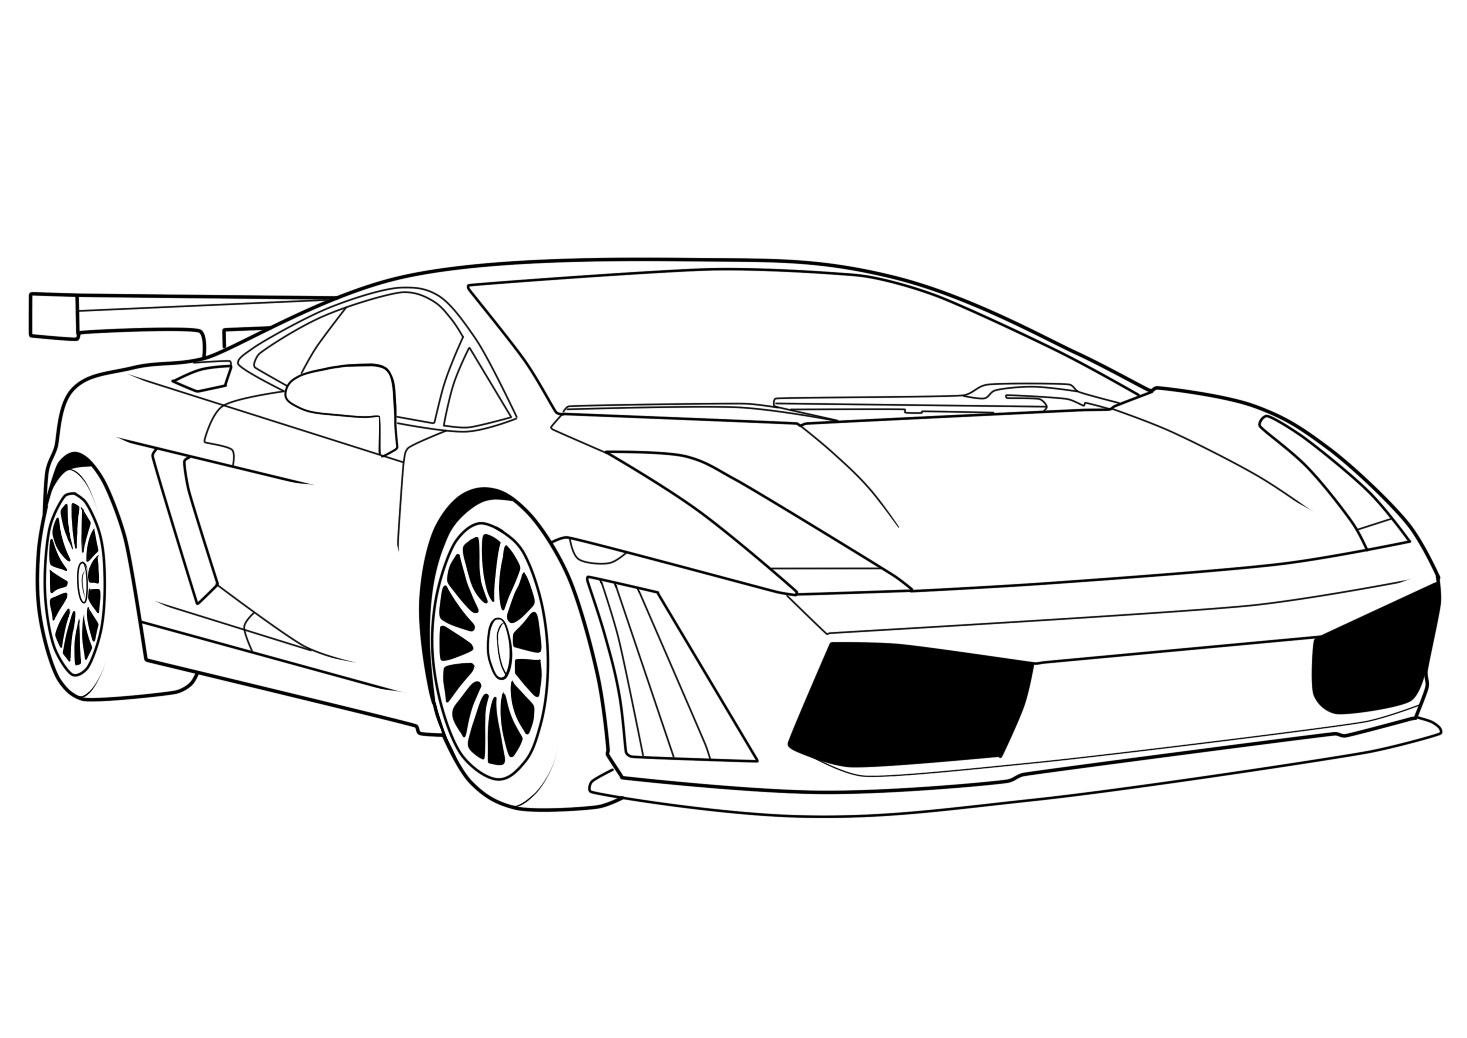 cars colouring page 4 disney cars free printable coloring pages page colouring cars